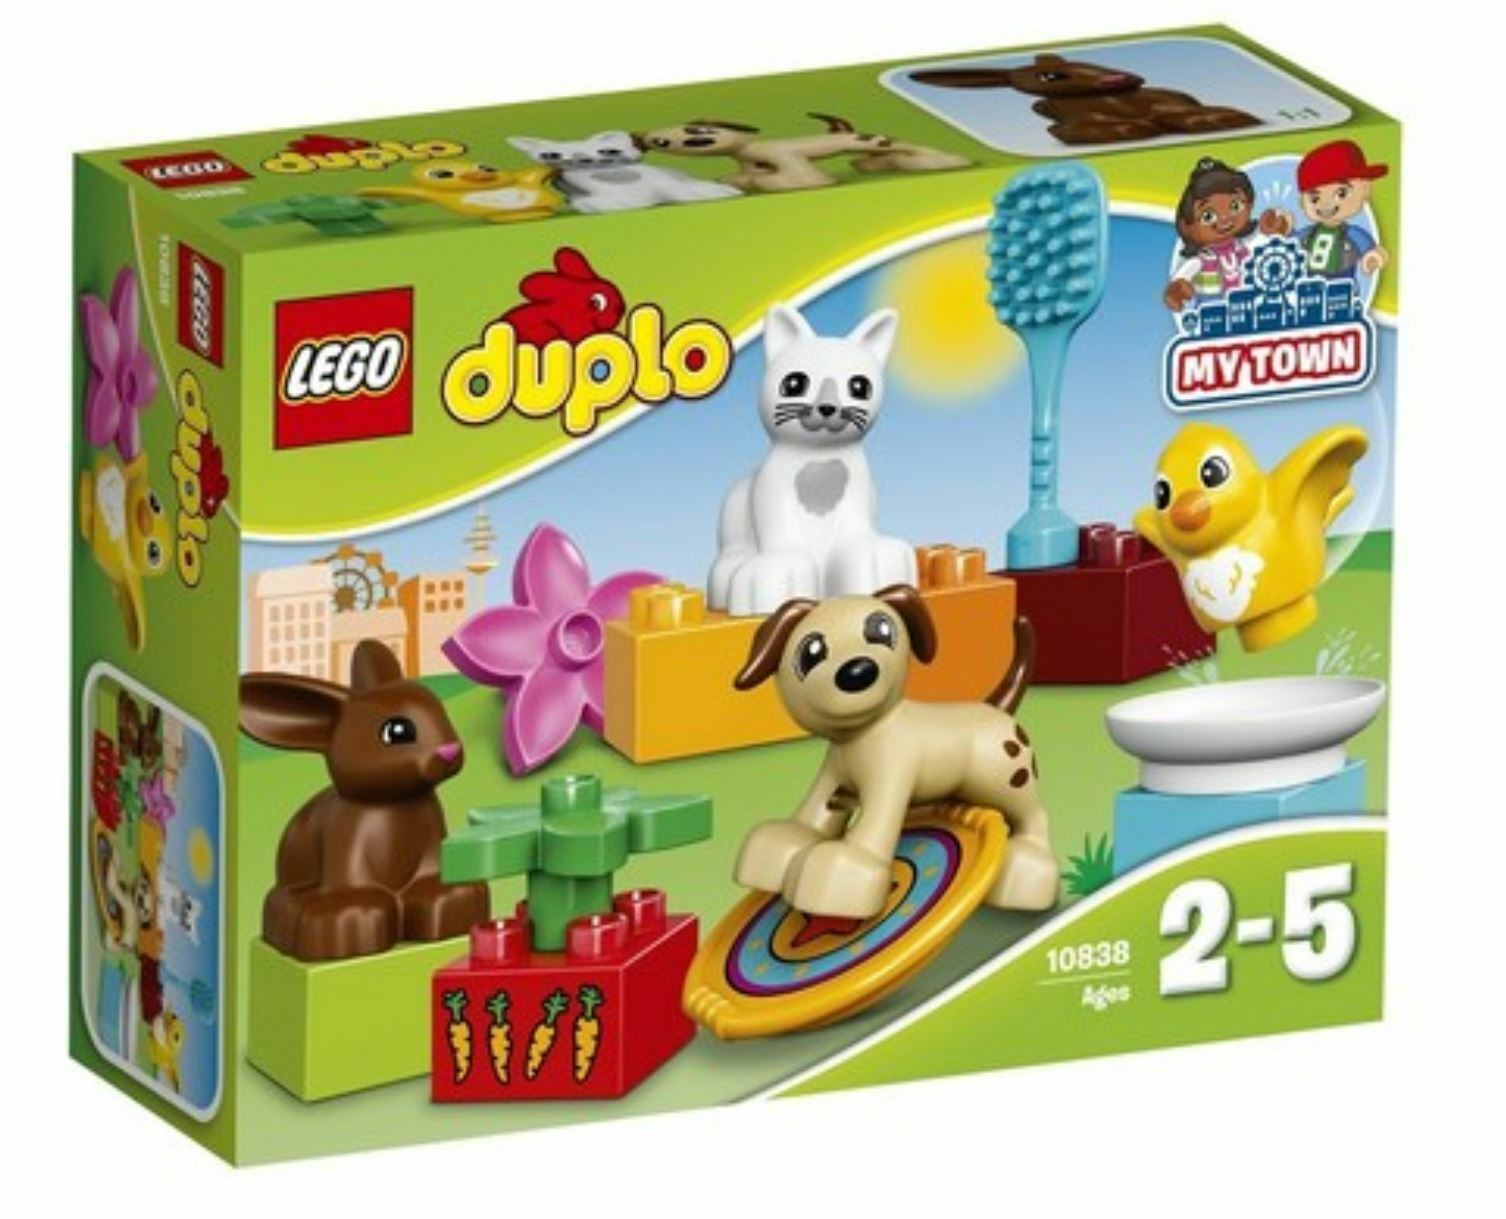 [LEGO] Duplo 10838 Creative Play Town Family Pets Pets Pets Set 2017 Version Free Shipping 28c6c1